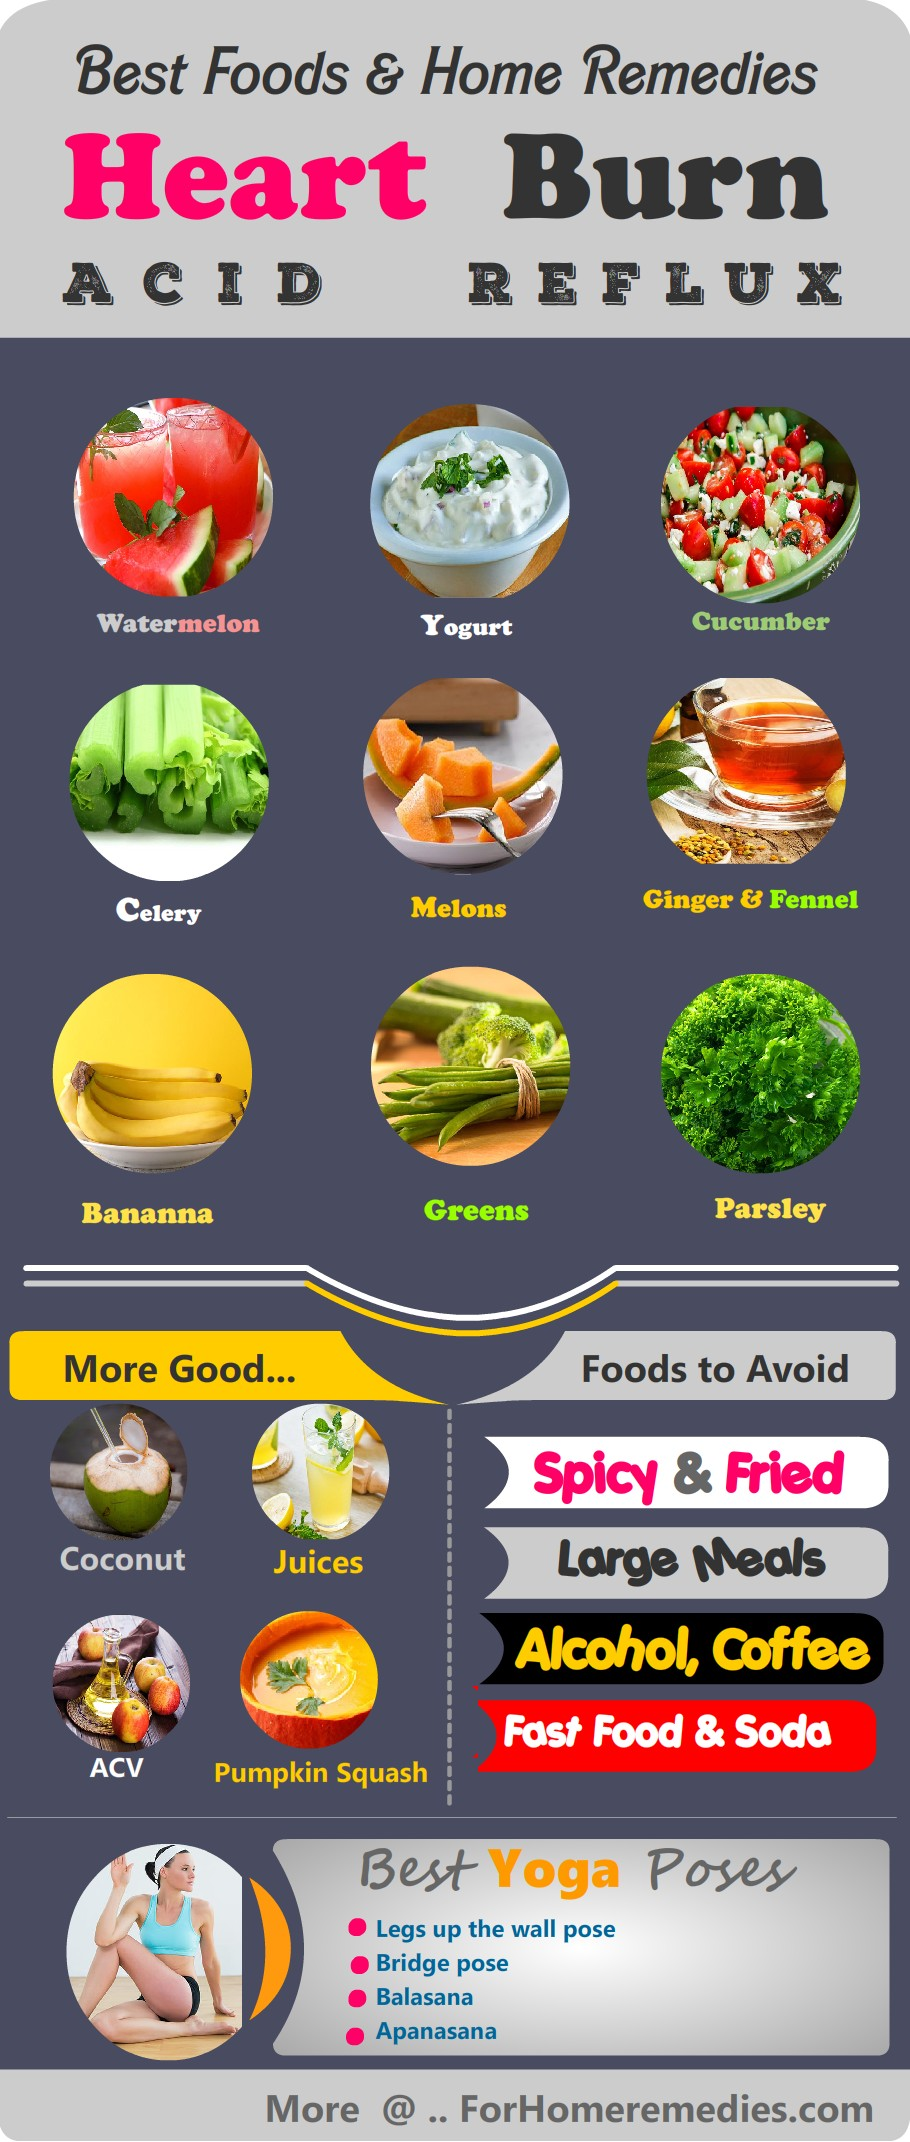 Home Remedies and Best Foods for Heart Burn Gerd Acid Reflux